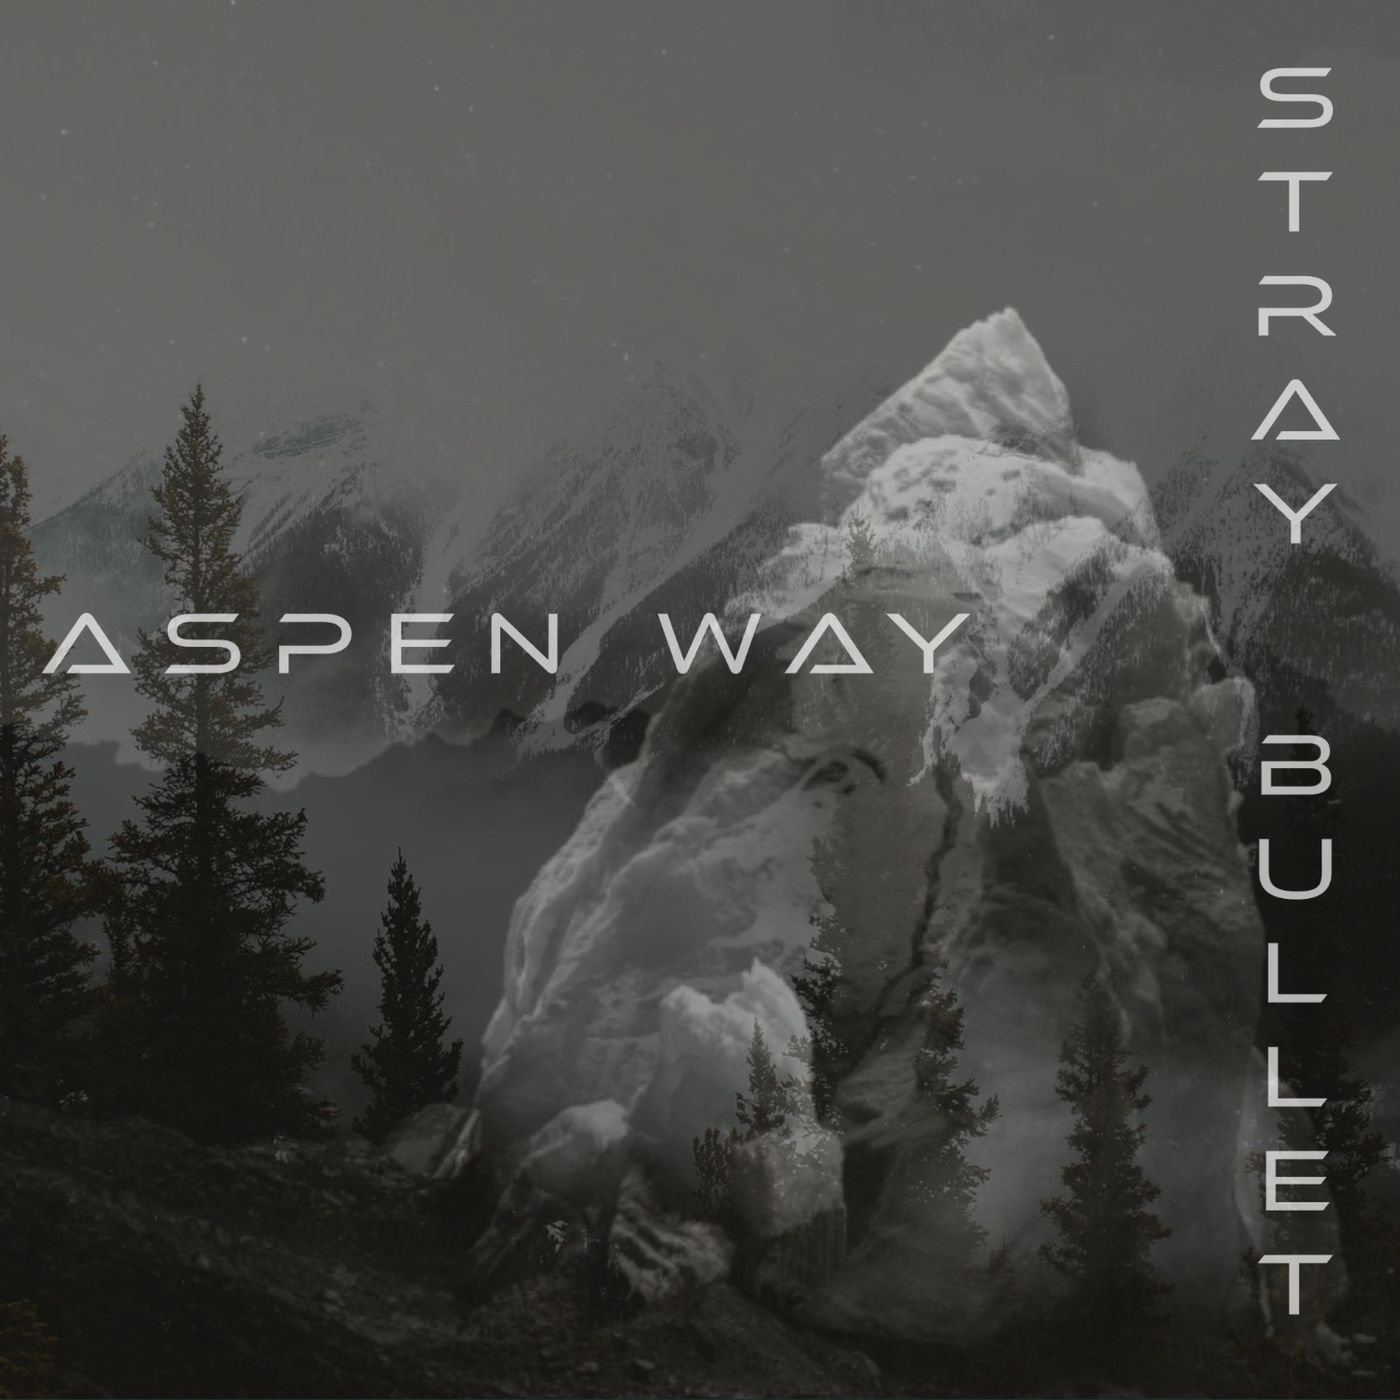 Aspen Way - Stray Bullet [single] (2021)